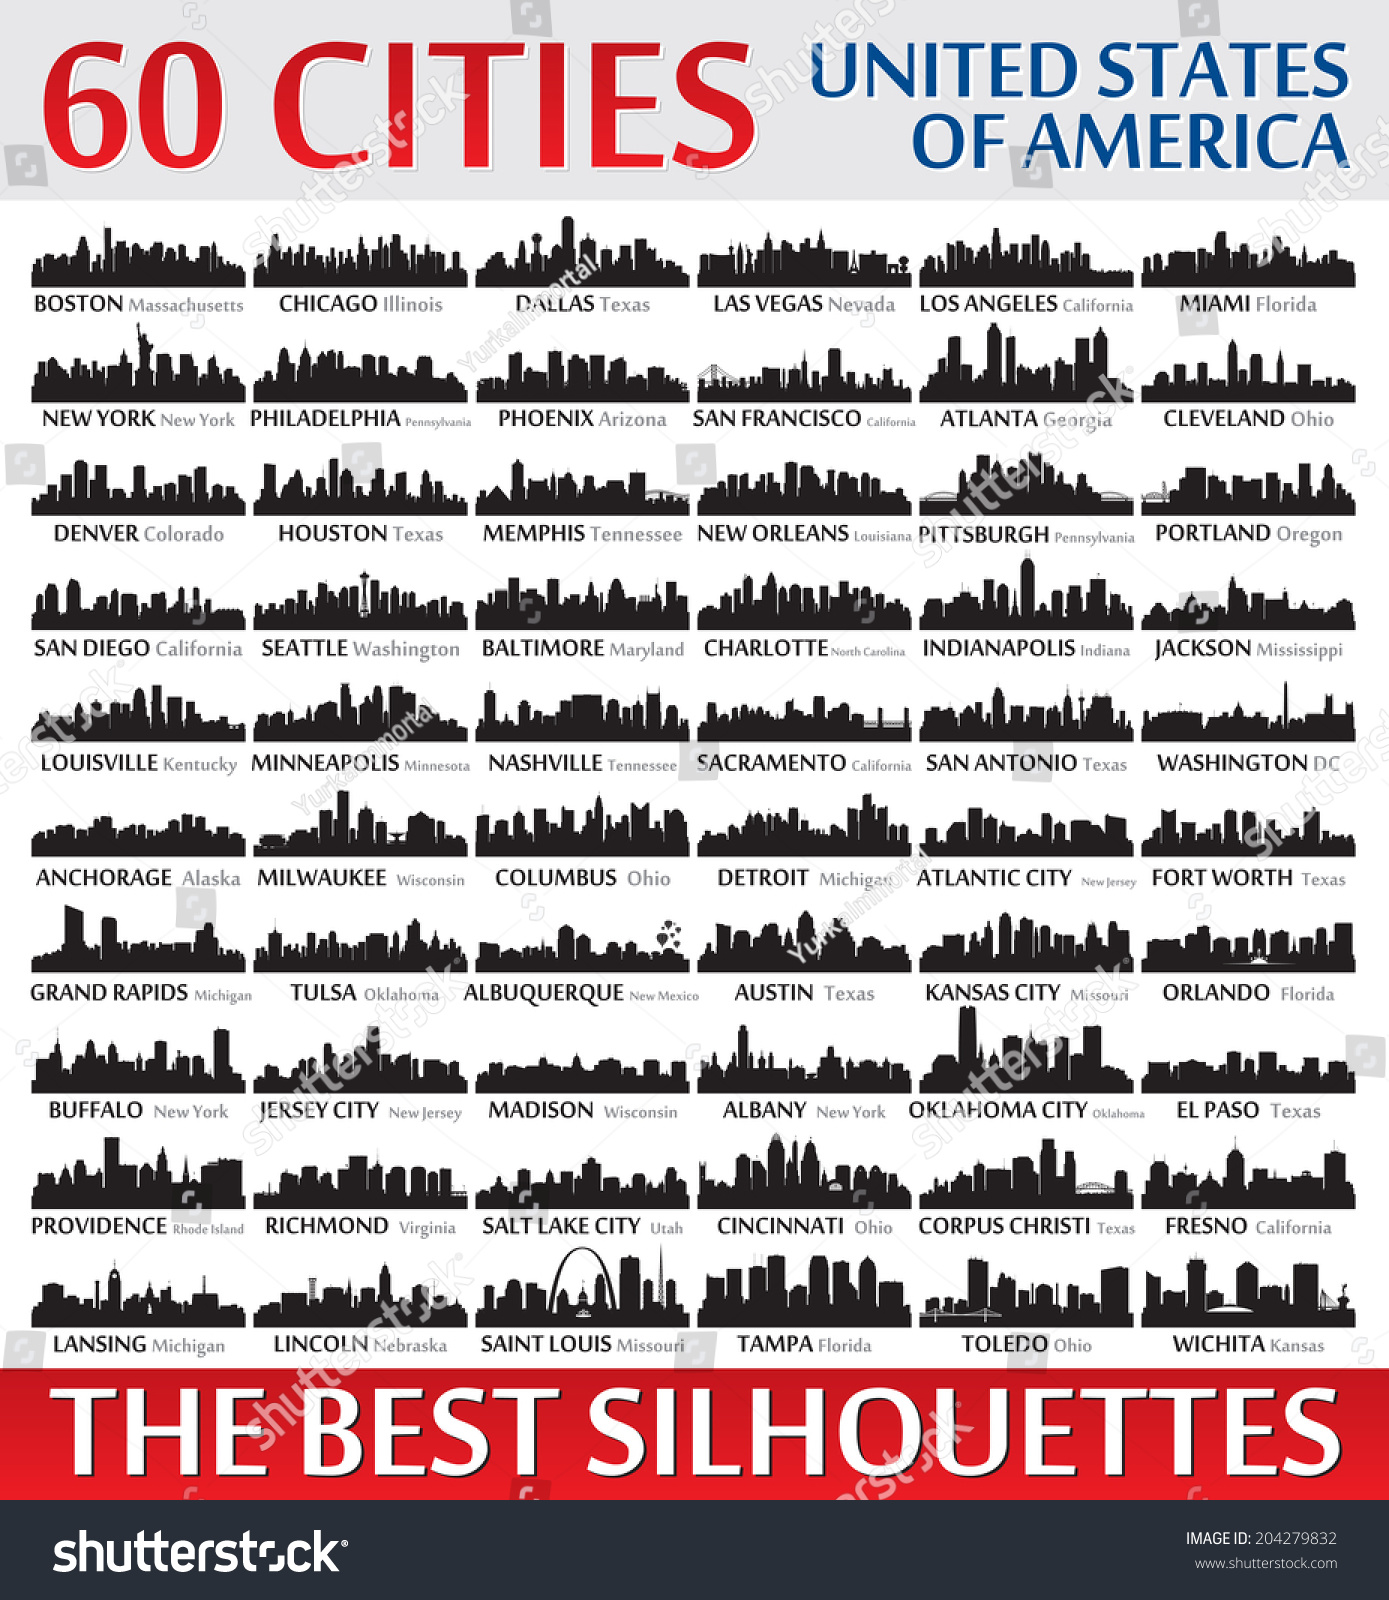 Incredible Skyline Set. 60 City Silhouettes Of United